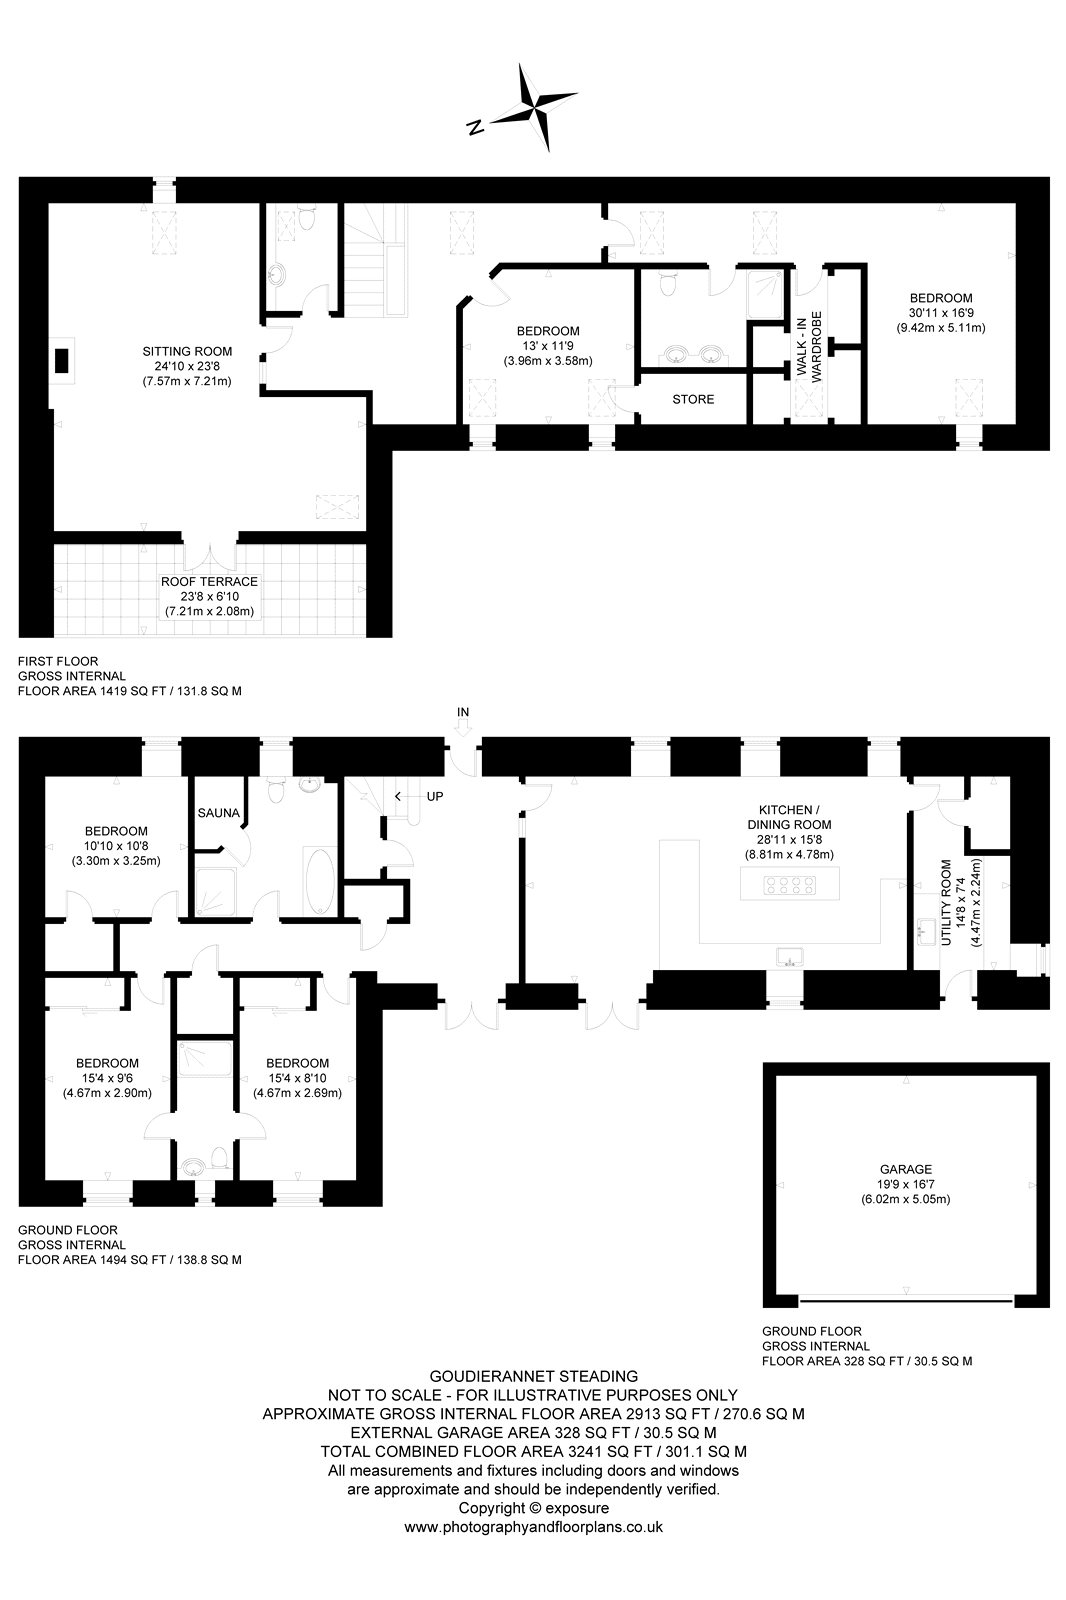 Floorplans for 1 Goudierannet Farm, Brunthill, Kinross-shire, KY13